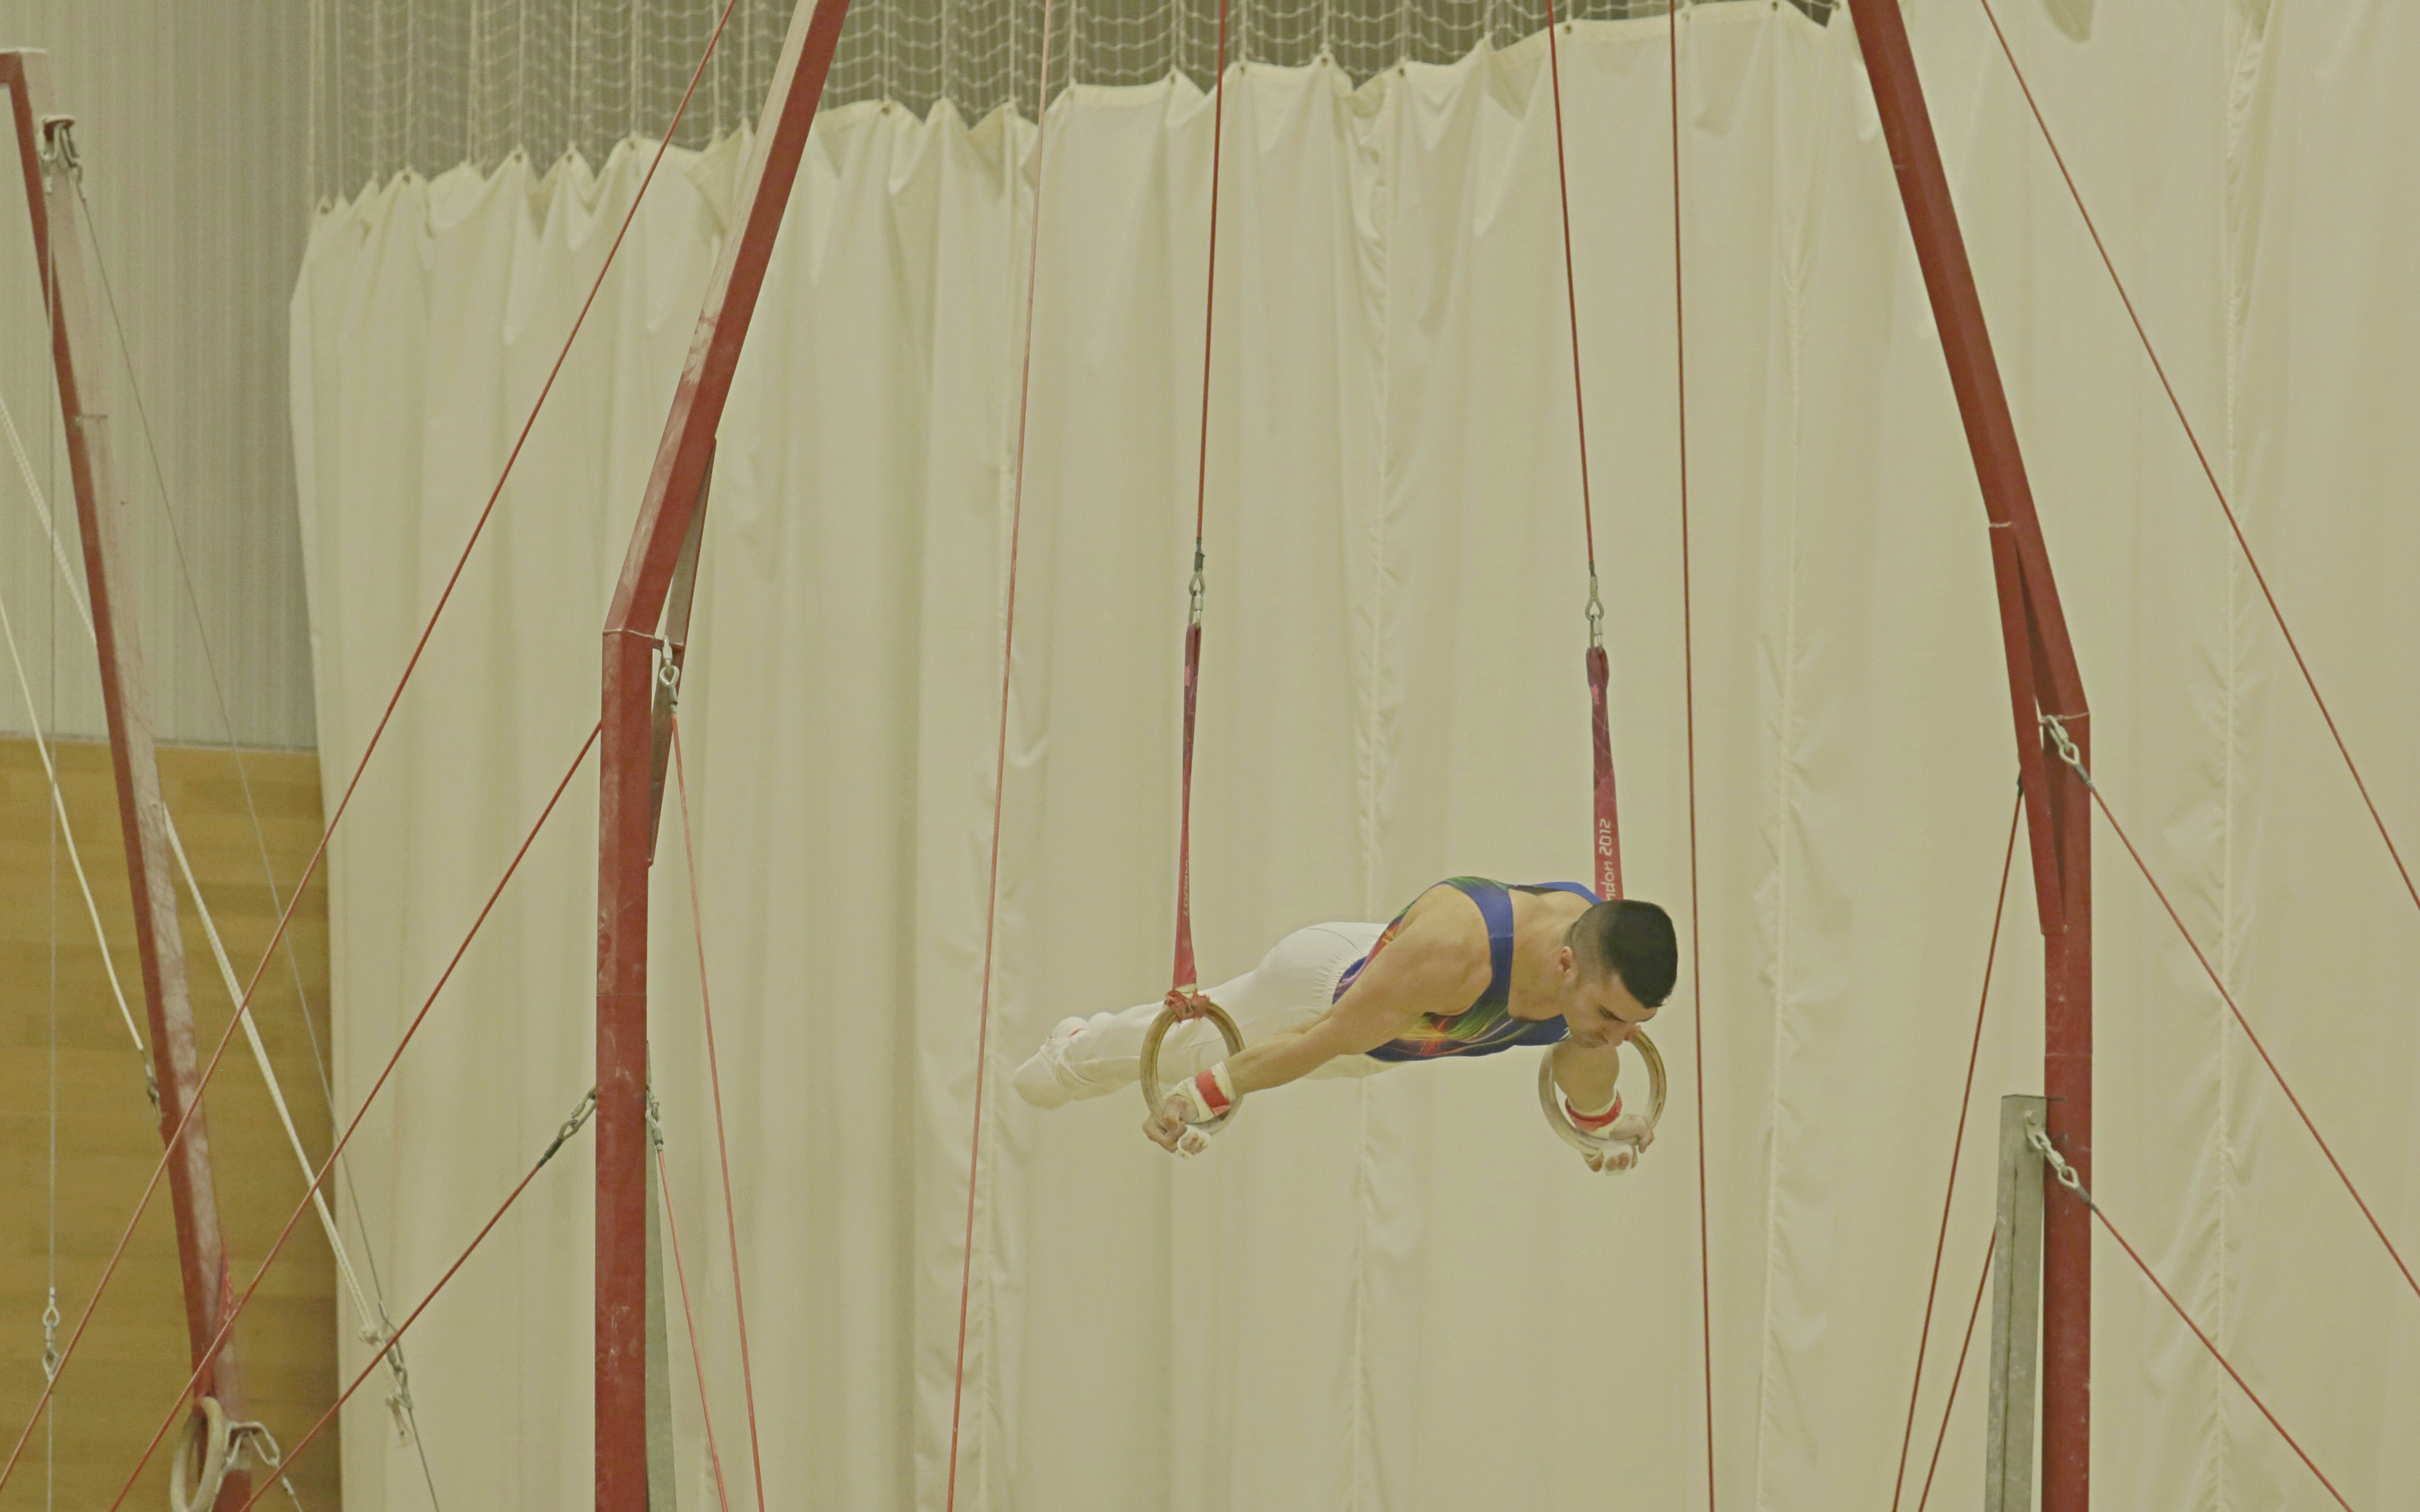 STK SPORT Dr Kolimechkov performing on Rings